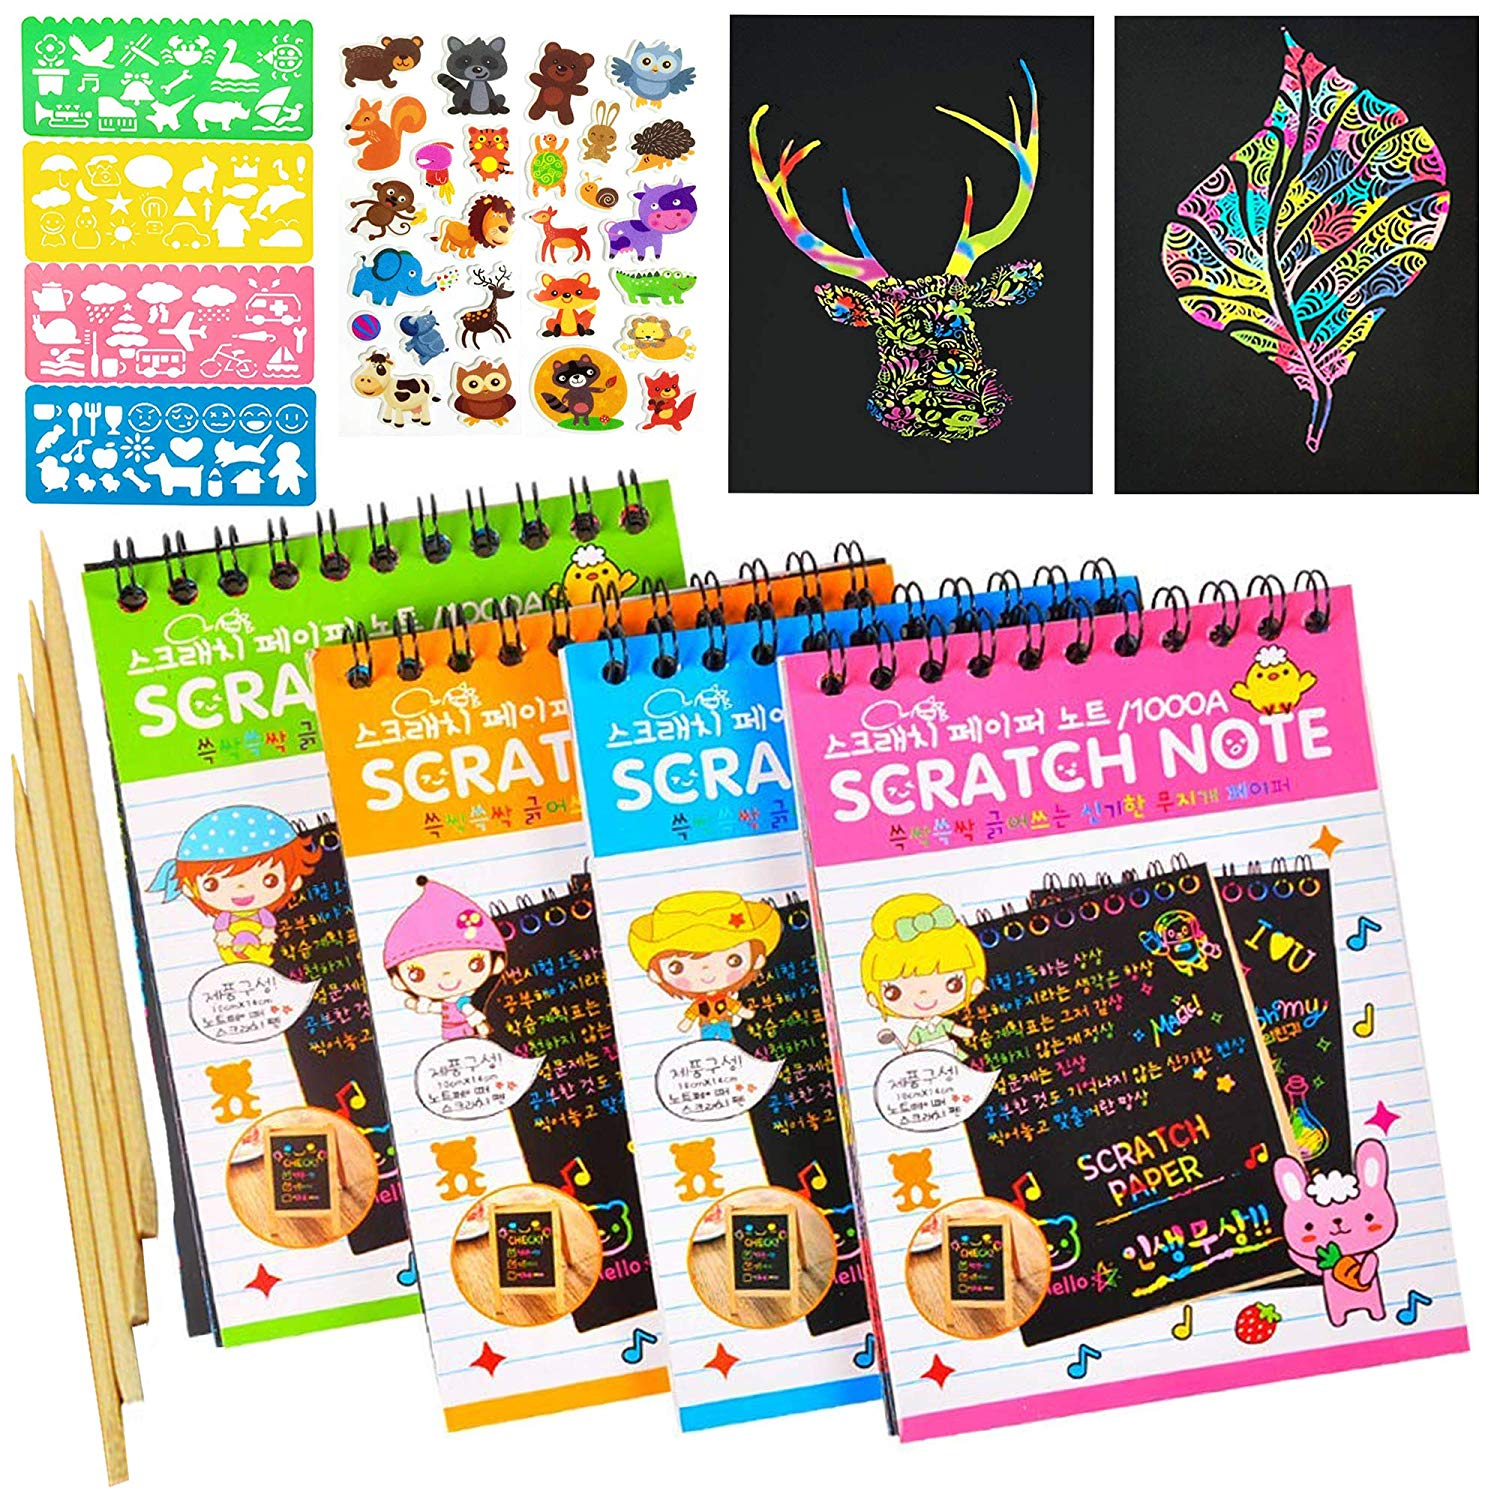 10*14cm Scratch Note Children's Creative DIY Color Rainbow Scratch Paper Book DIY Painting Colorful Graffiti Notebook Creative